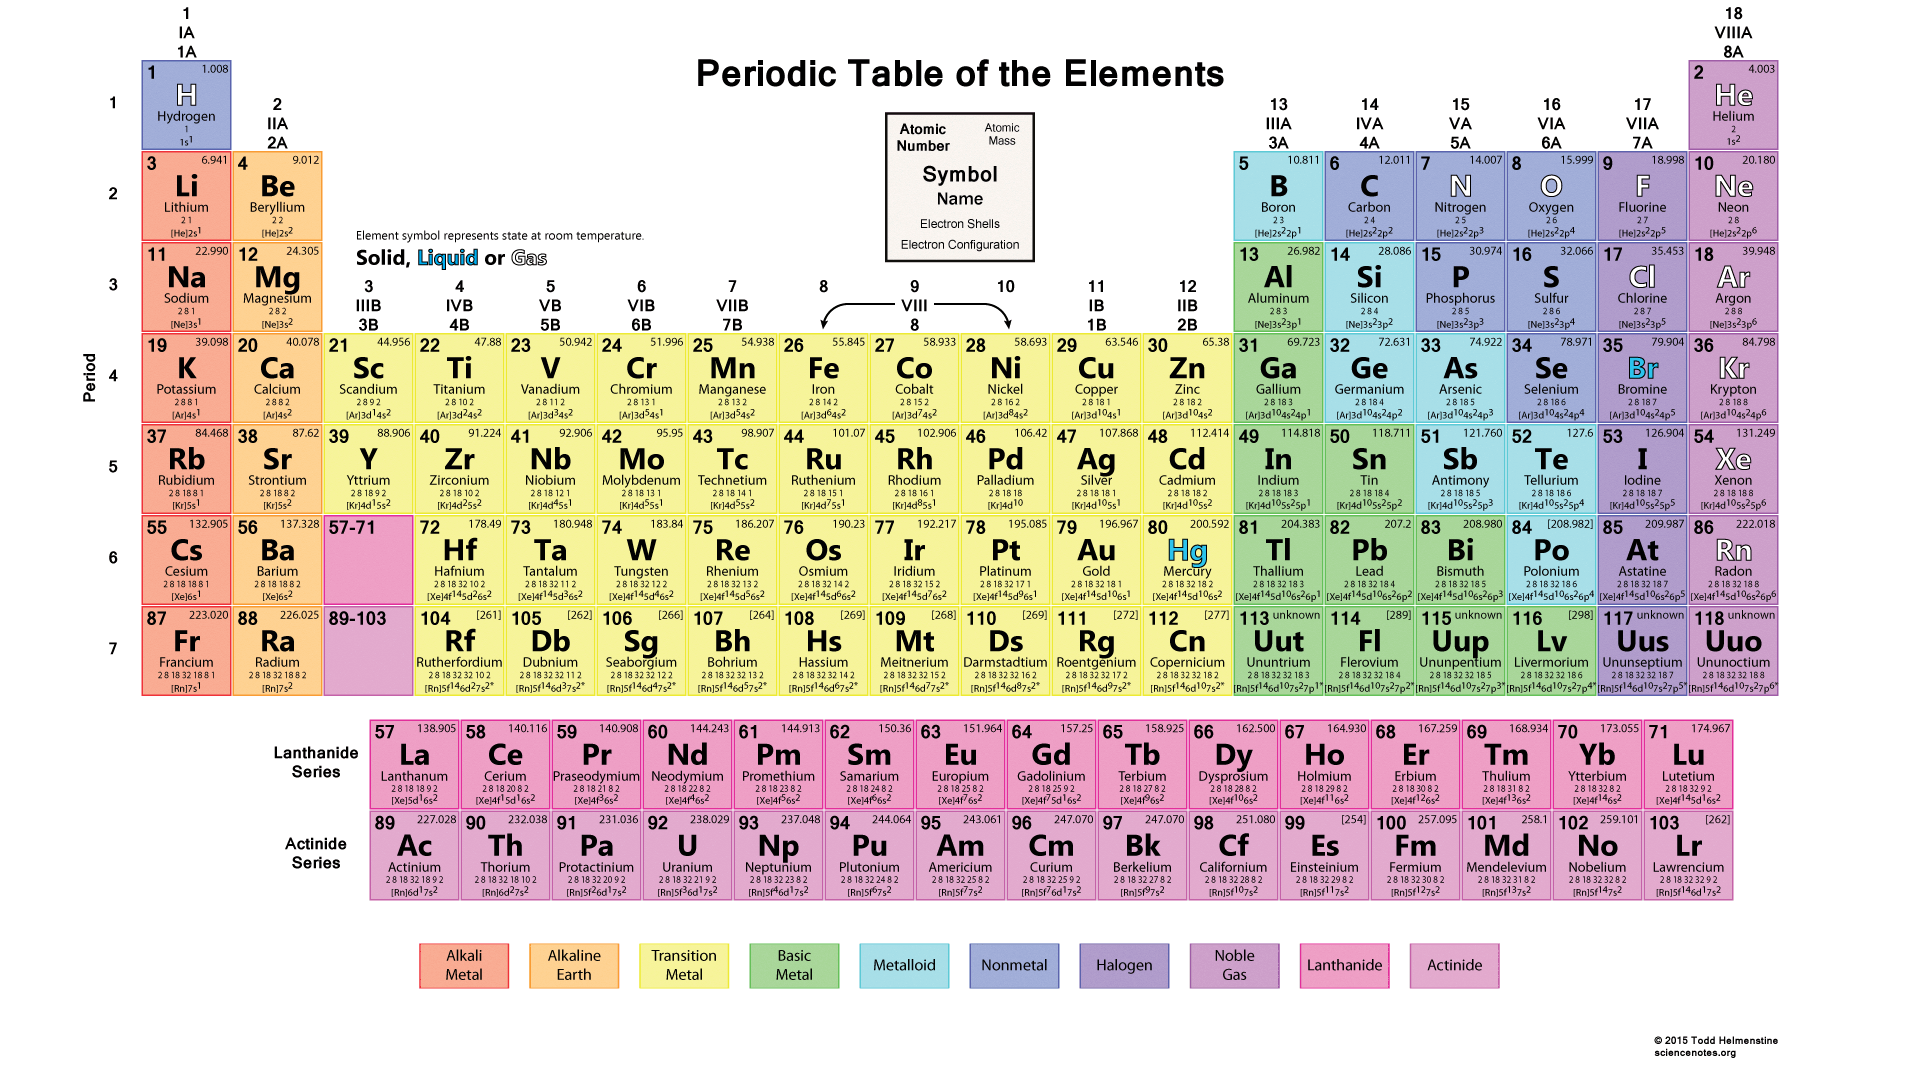 In what order are the elements of the periodic table arranged sciencenotes gamestrikefo Choice Image